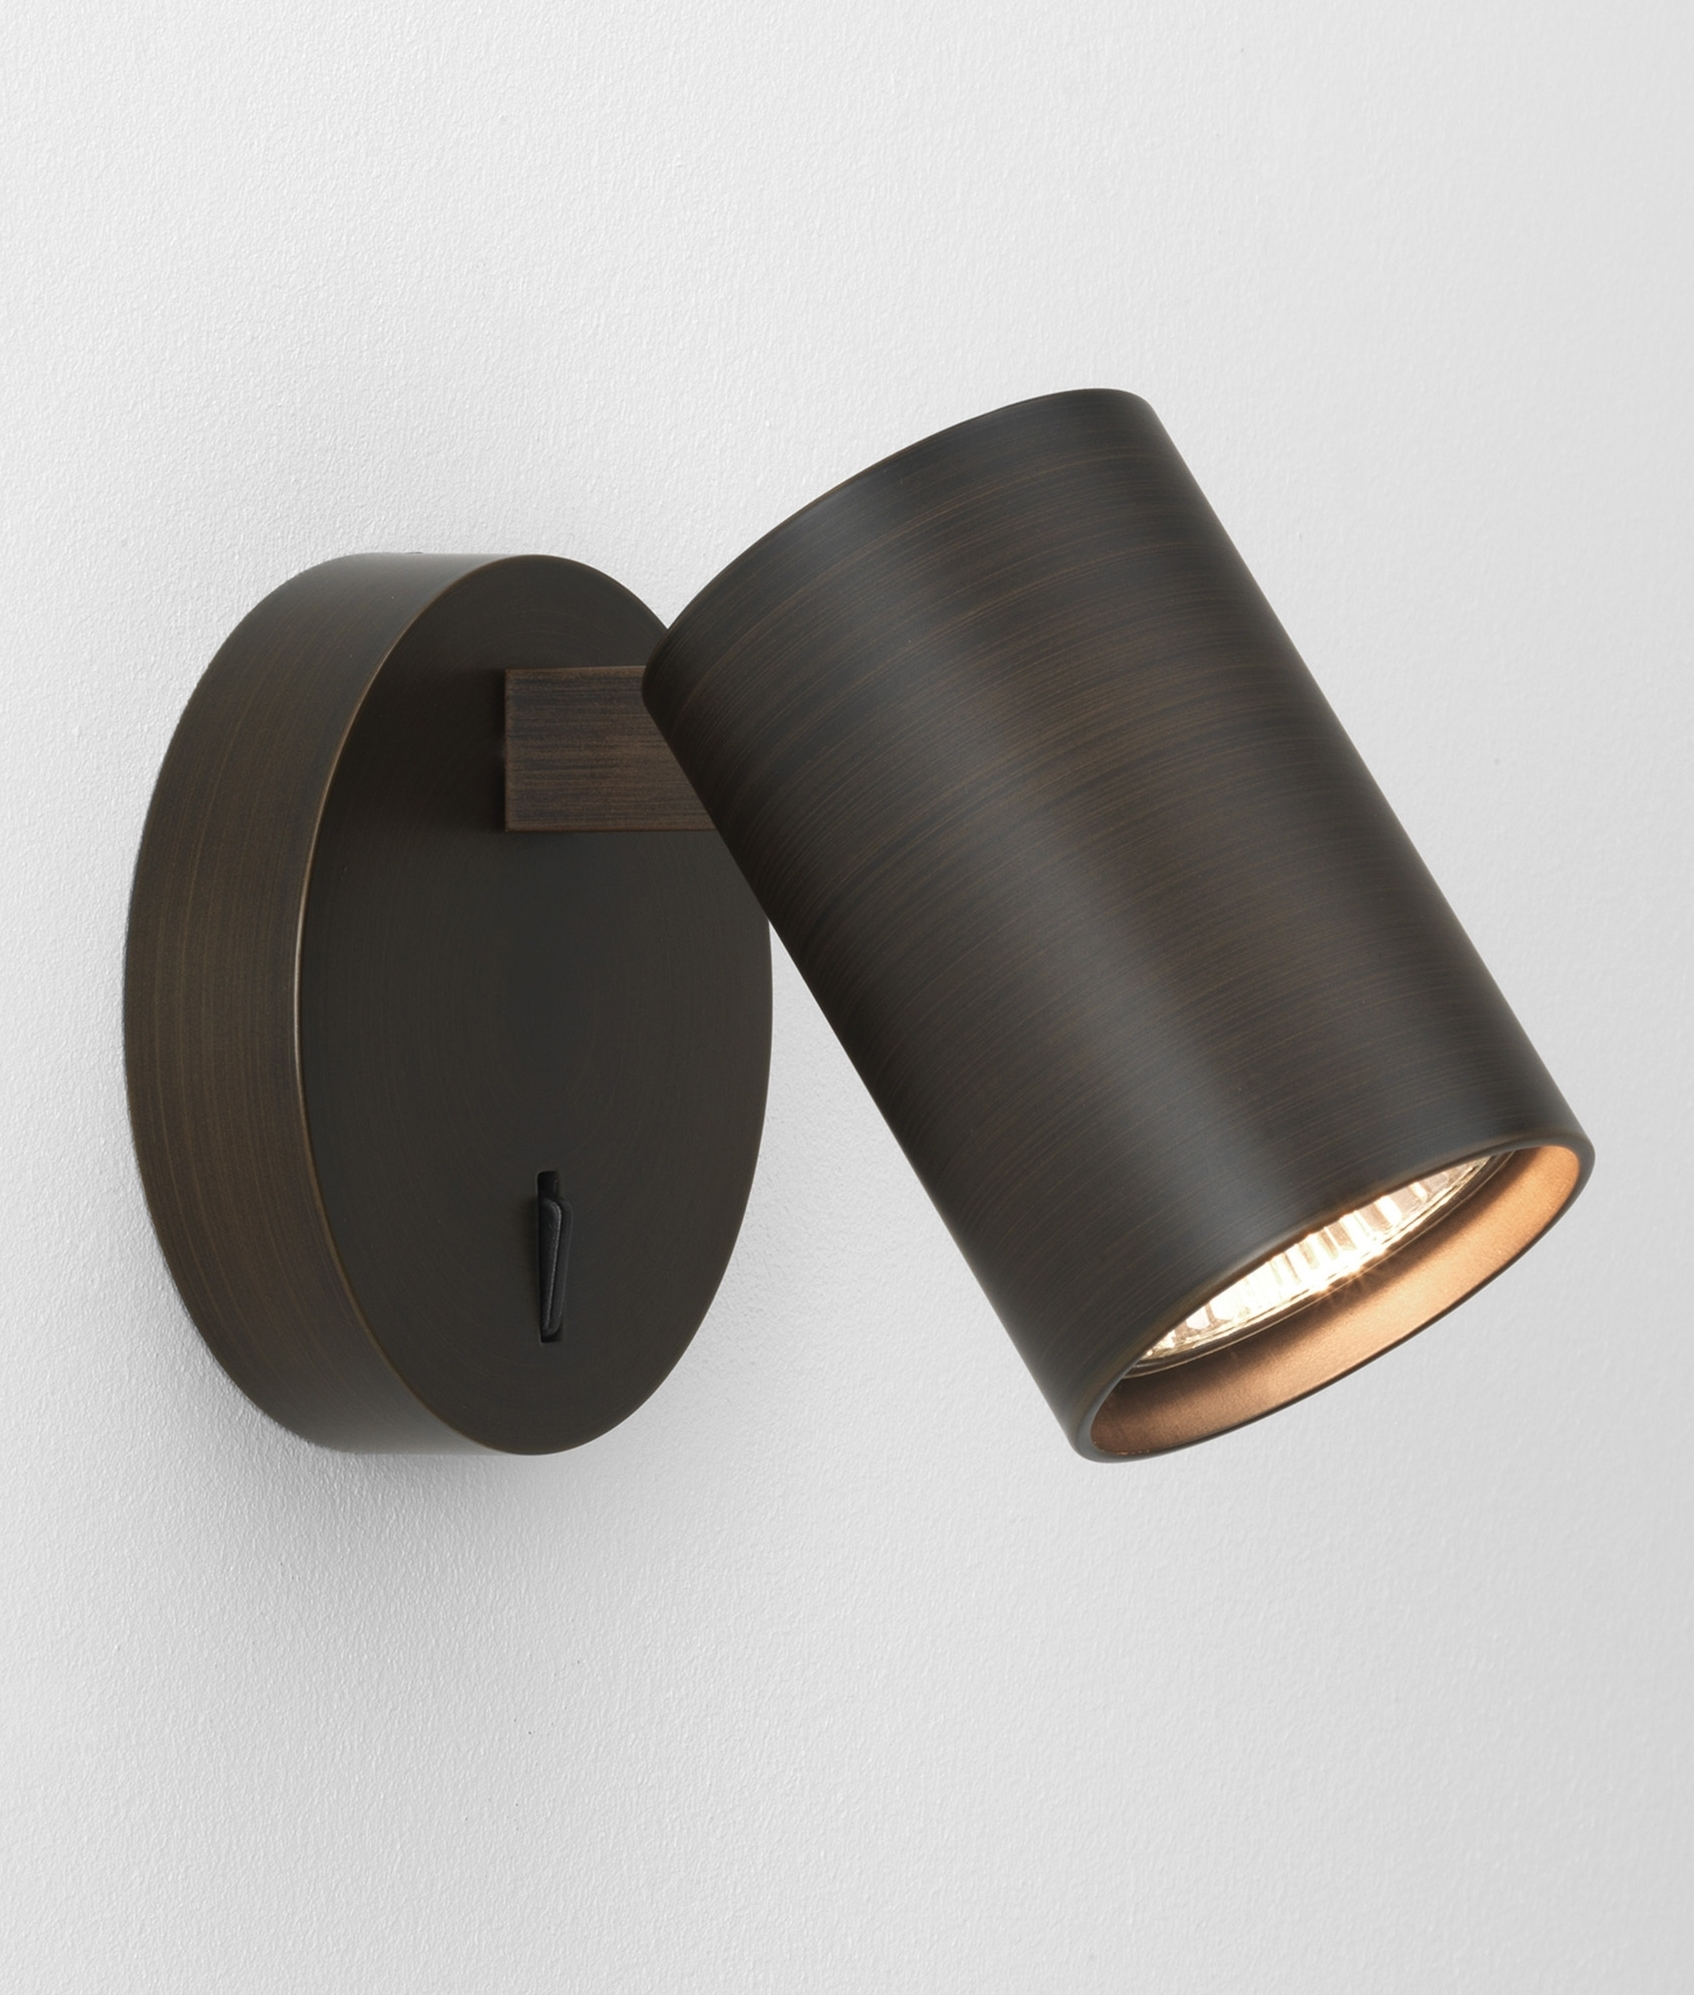 Modern Single Spotlight - White or Bronze Switched or Unswitched